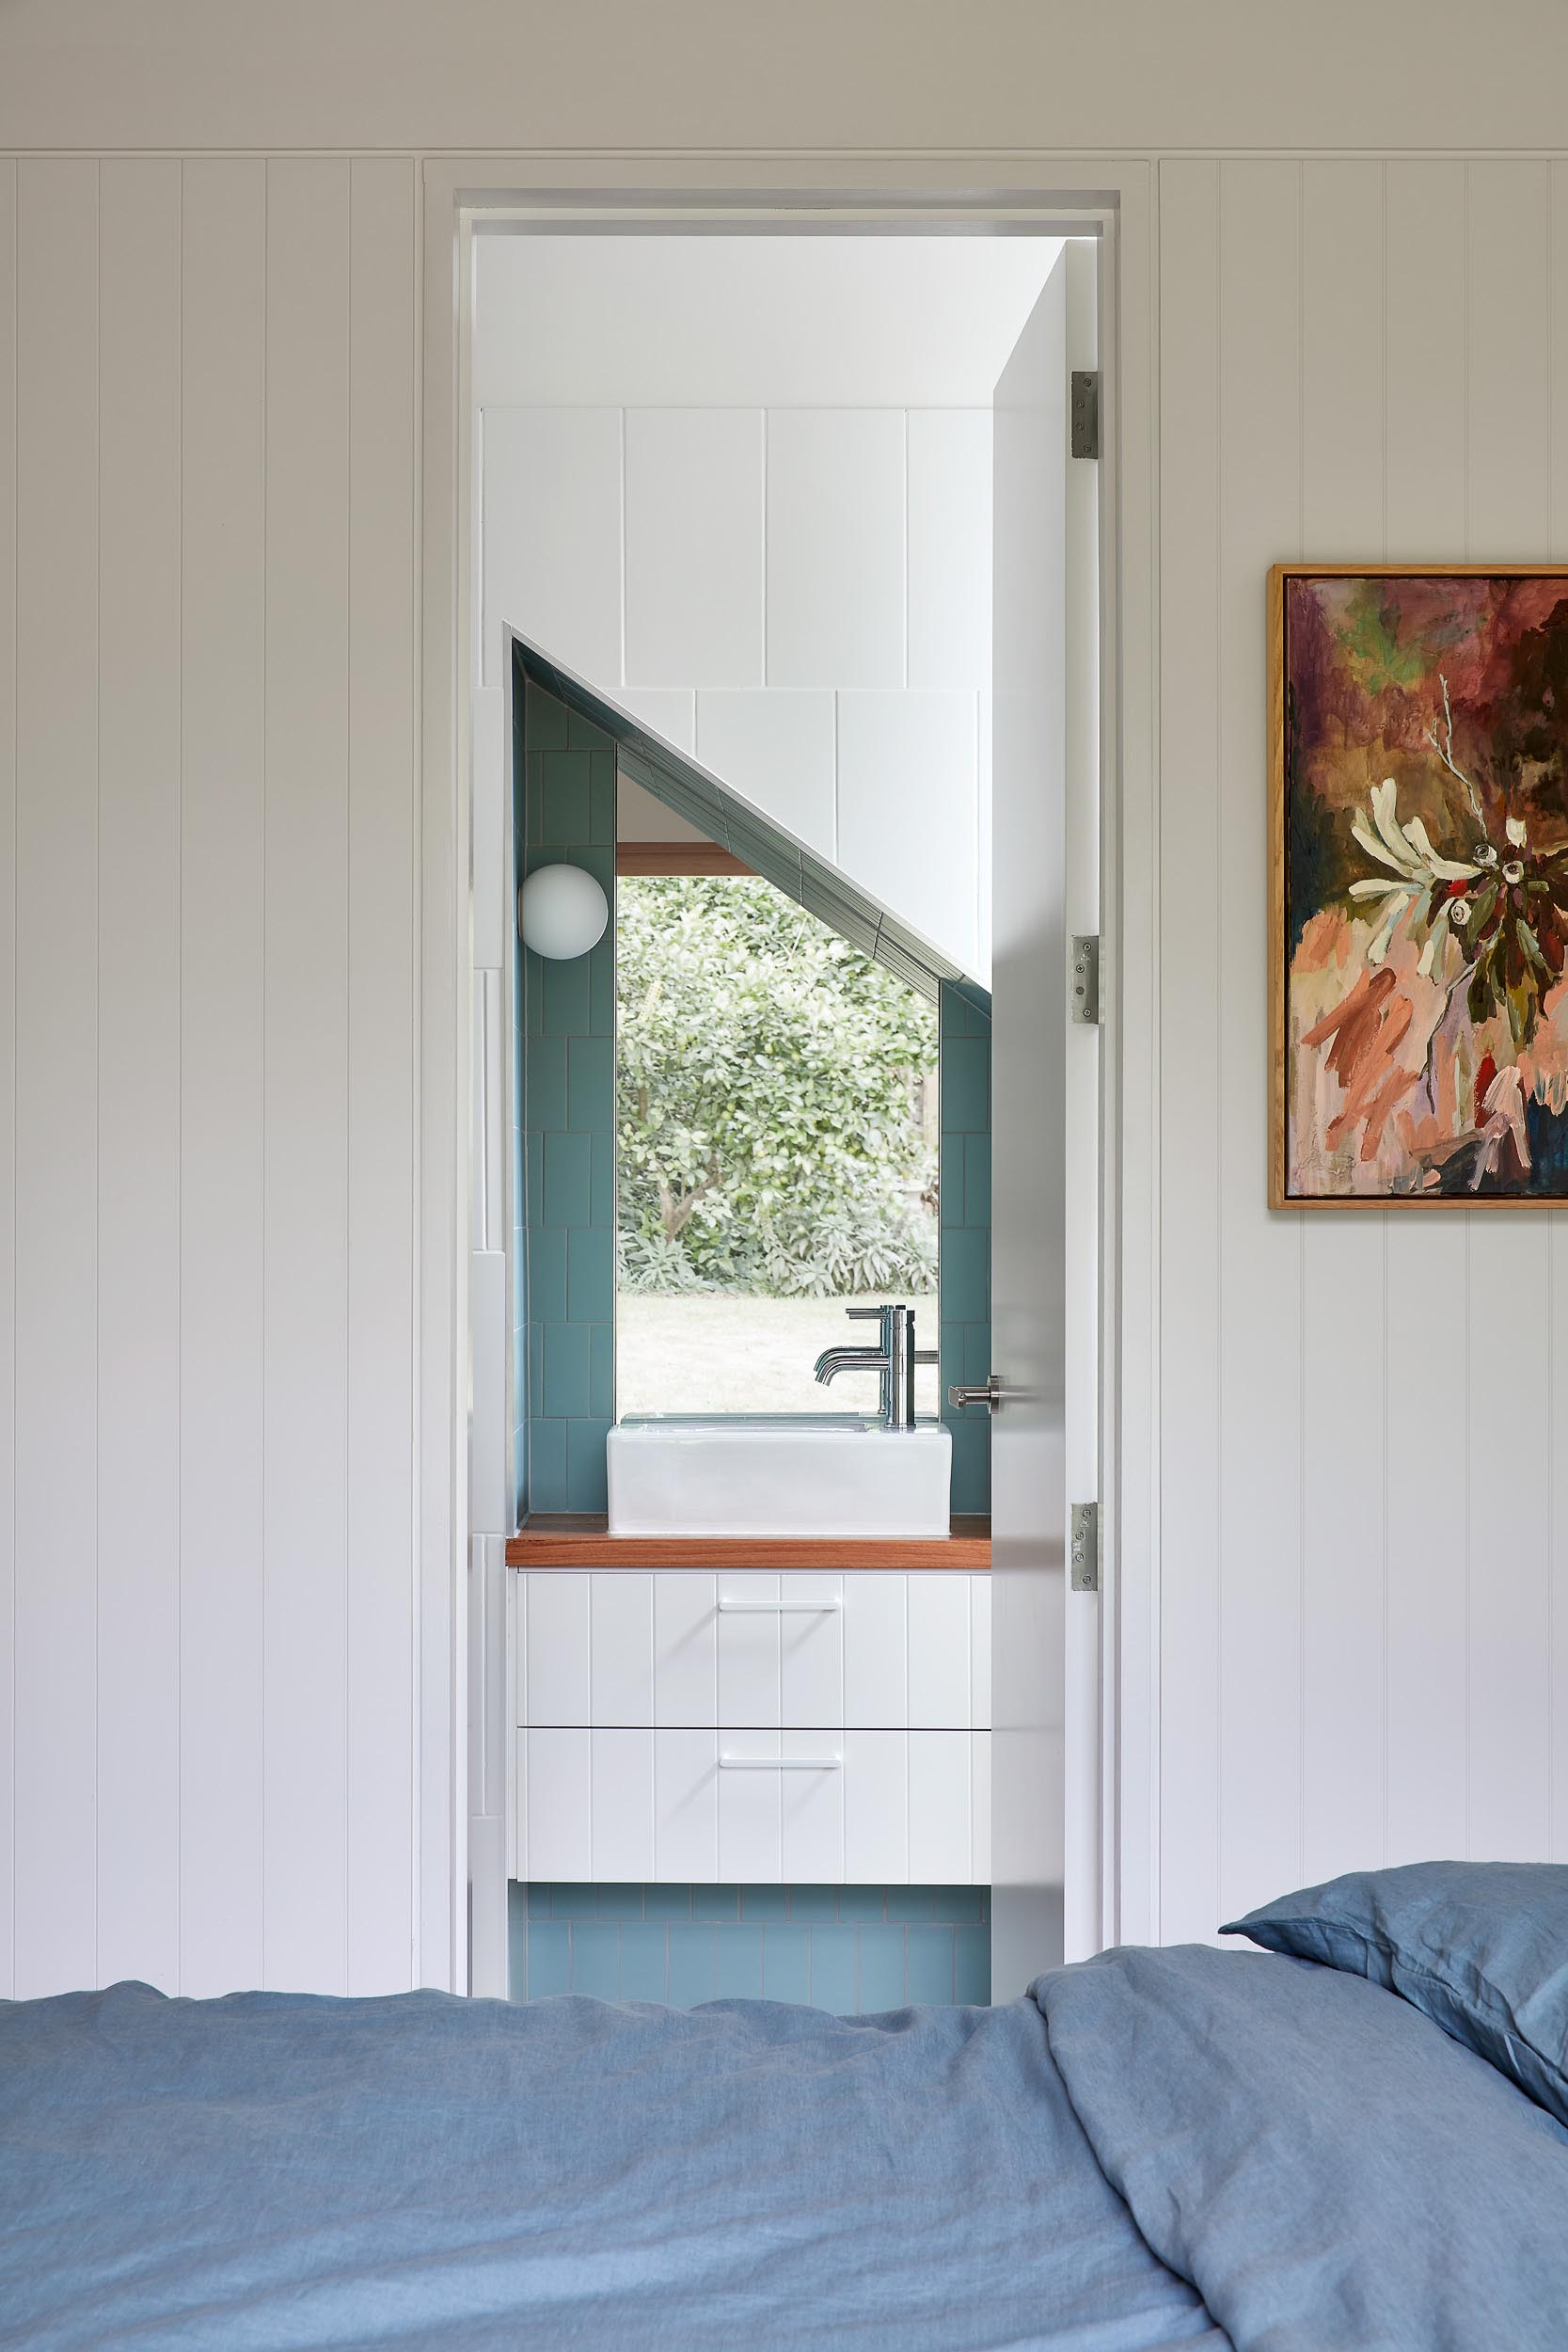 A modern bedroom has an en-suite bathroom with an angled mirror.